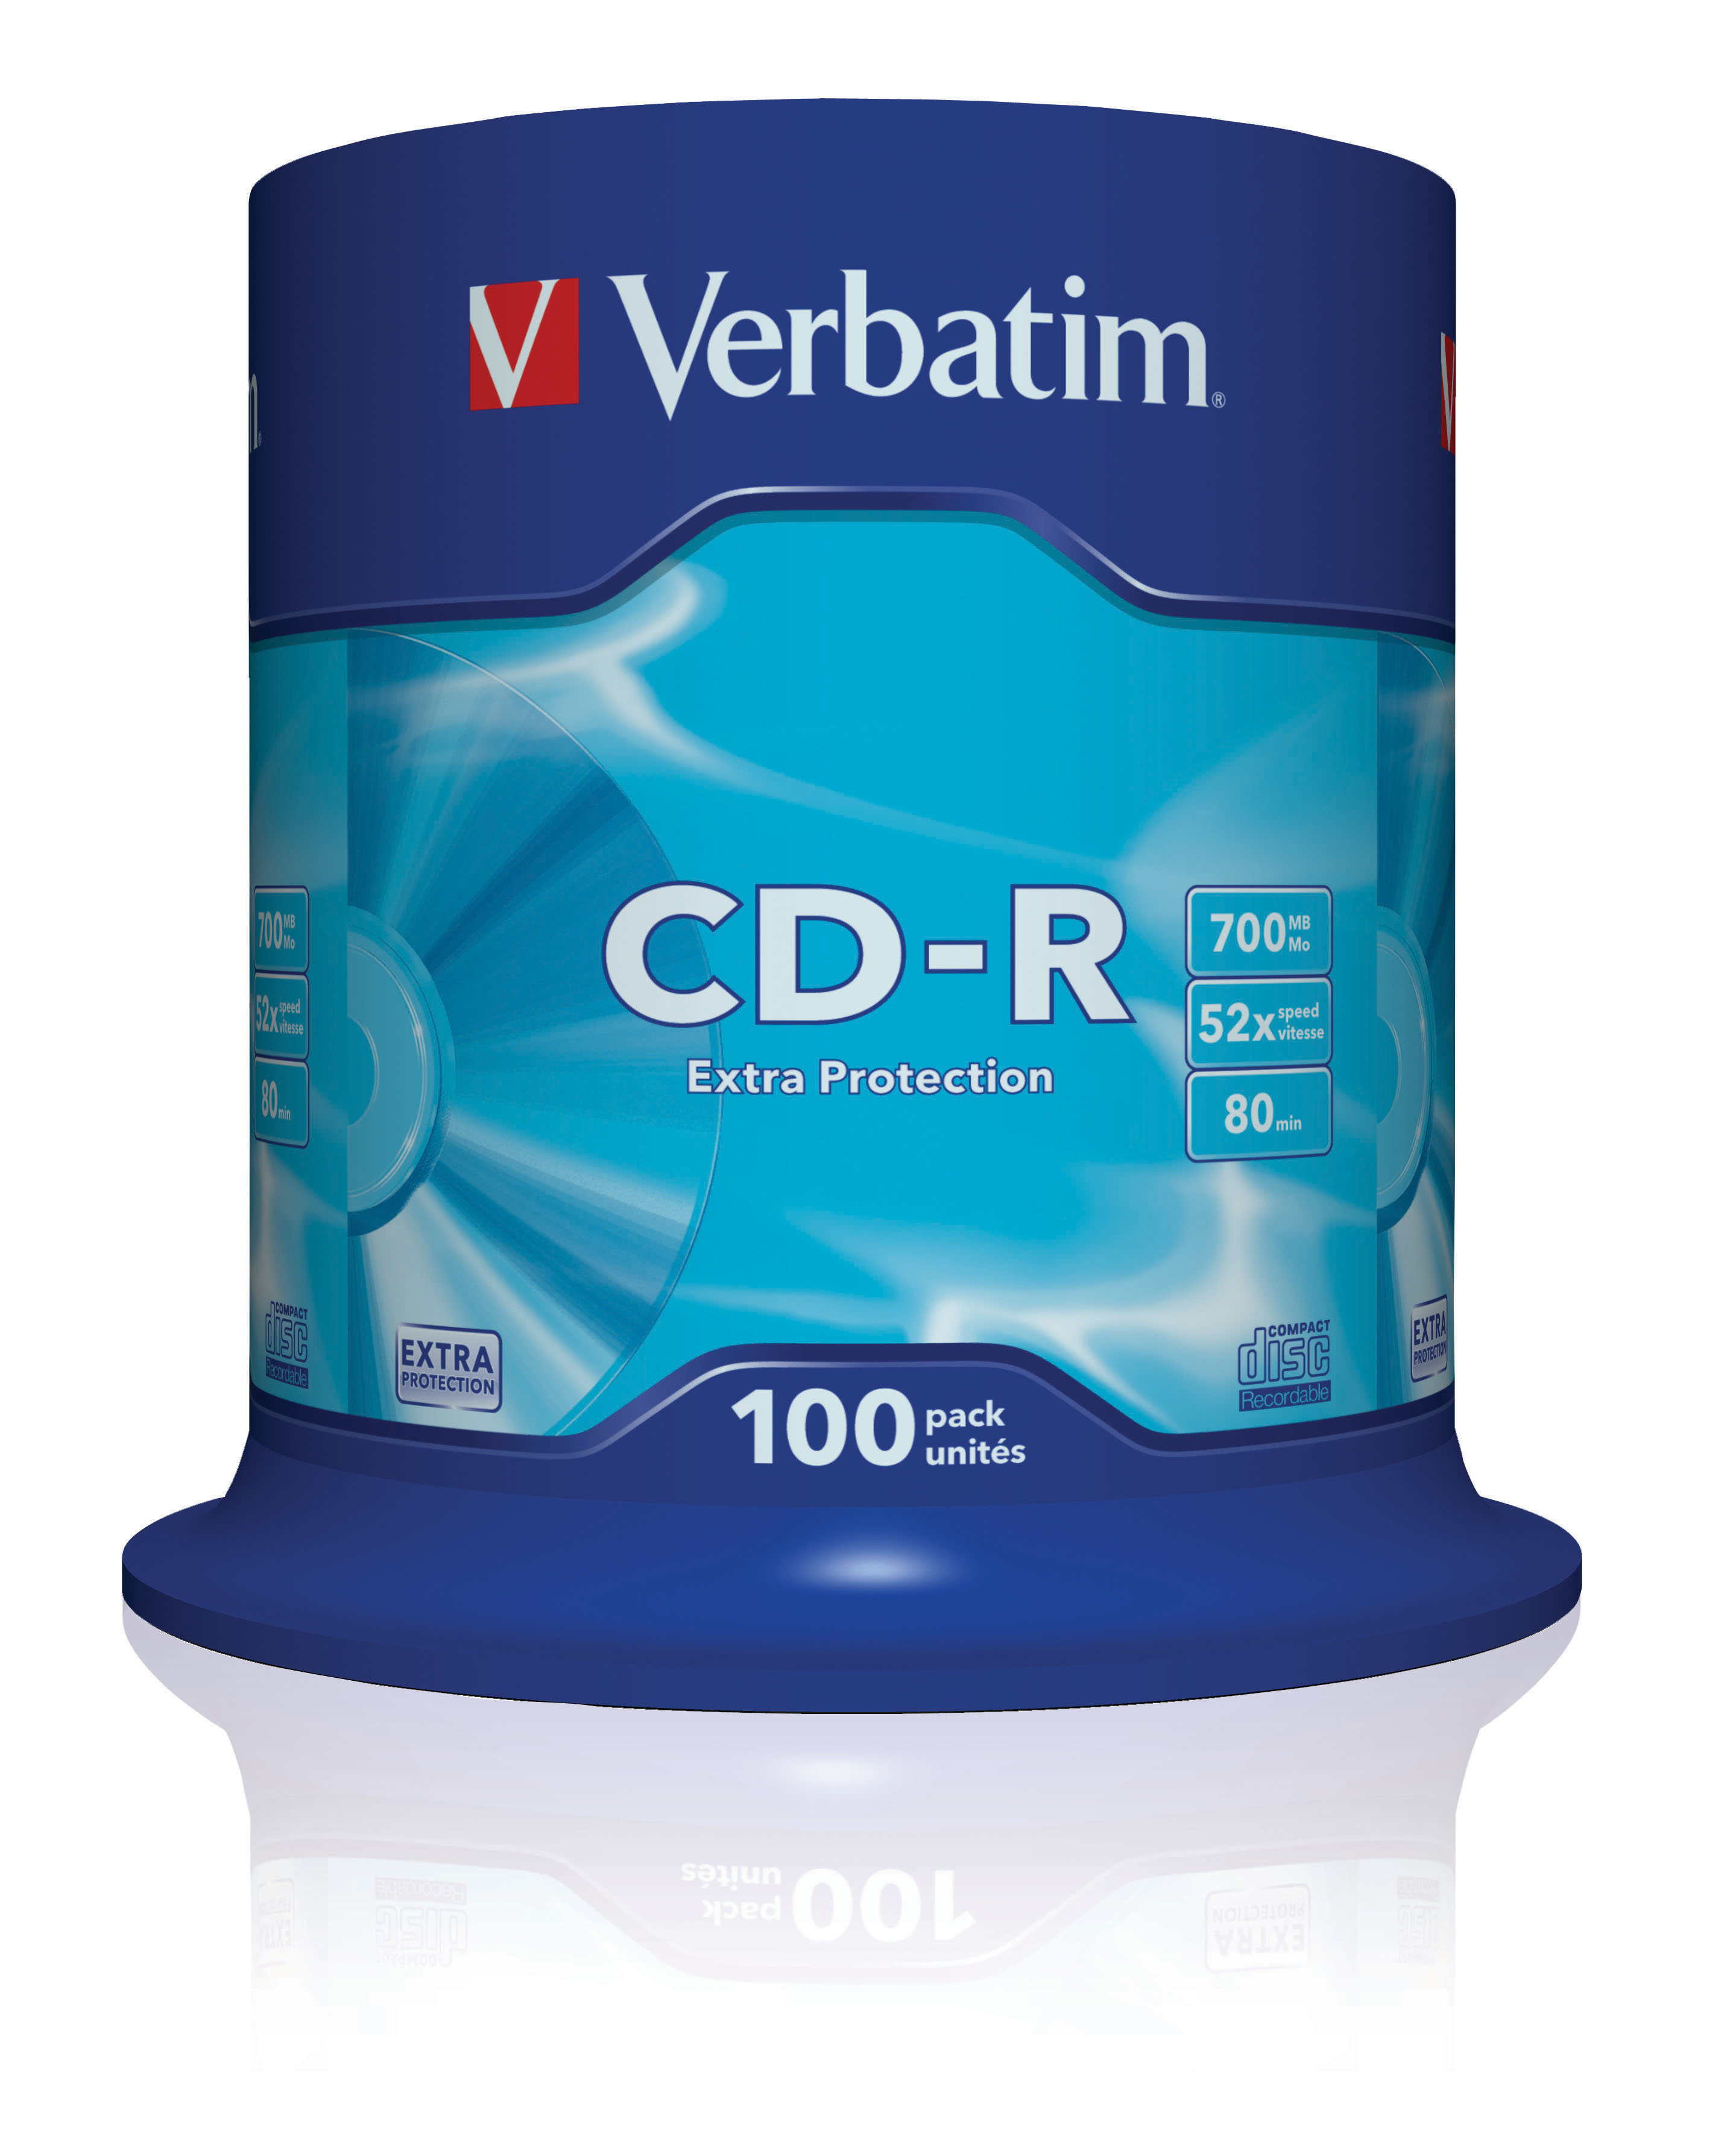 CD-R EXTRA PROTECTION CD-R 700MB 100PIEZA(S)